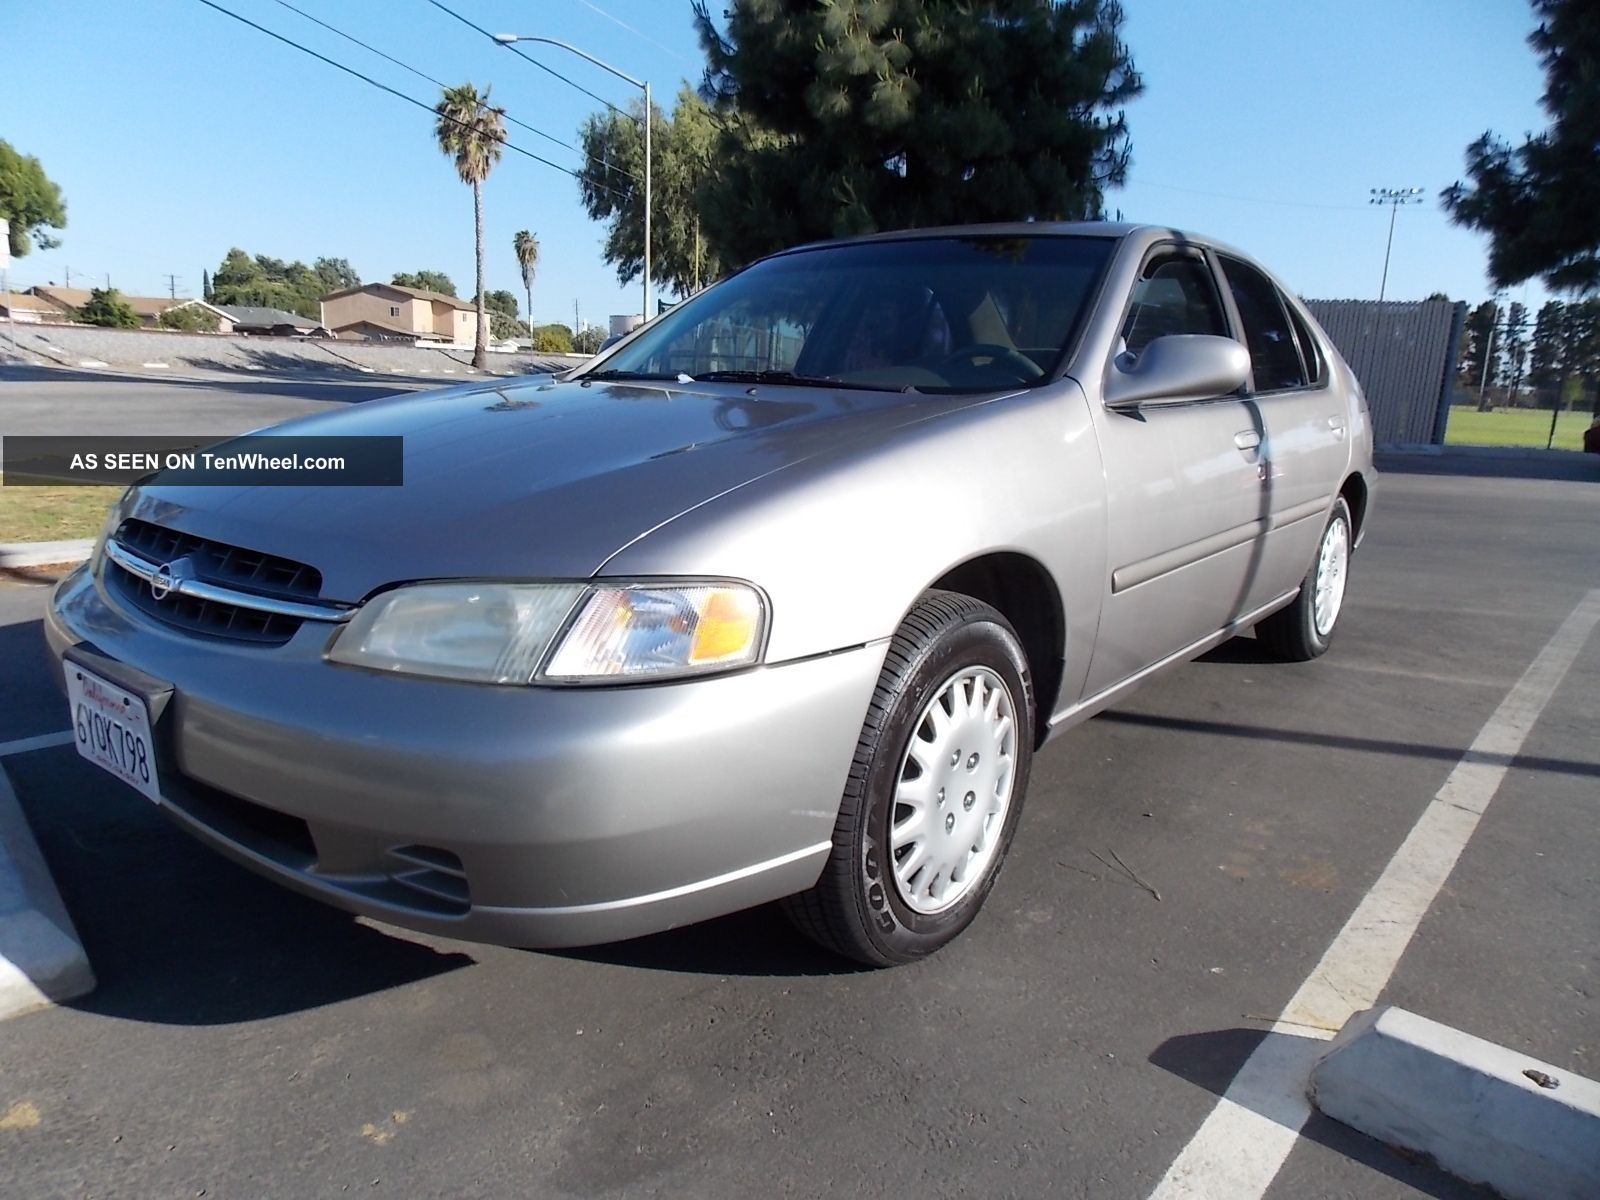 1999 nissan altima gxe 4cyl 2 4 auto 100k mi calif car. Black Bedroom Furniture Sets. Home Design Ideas